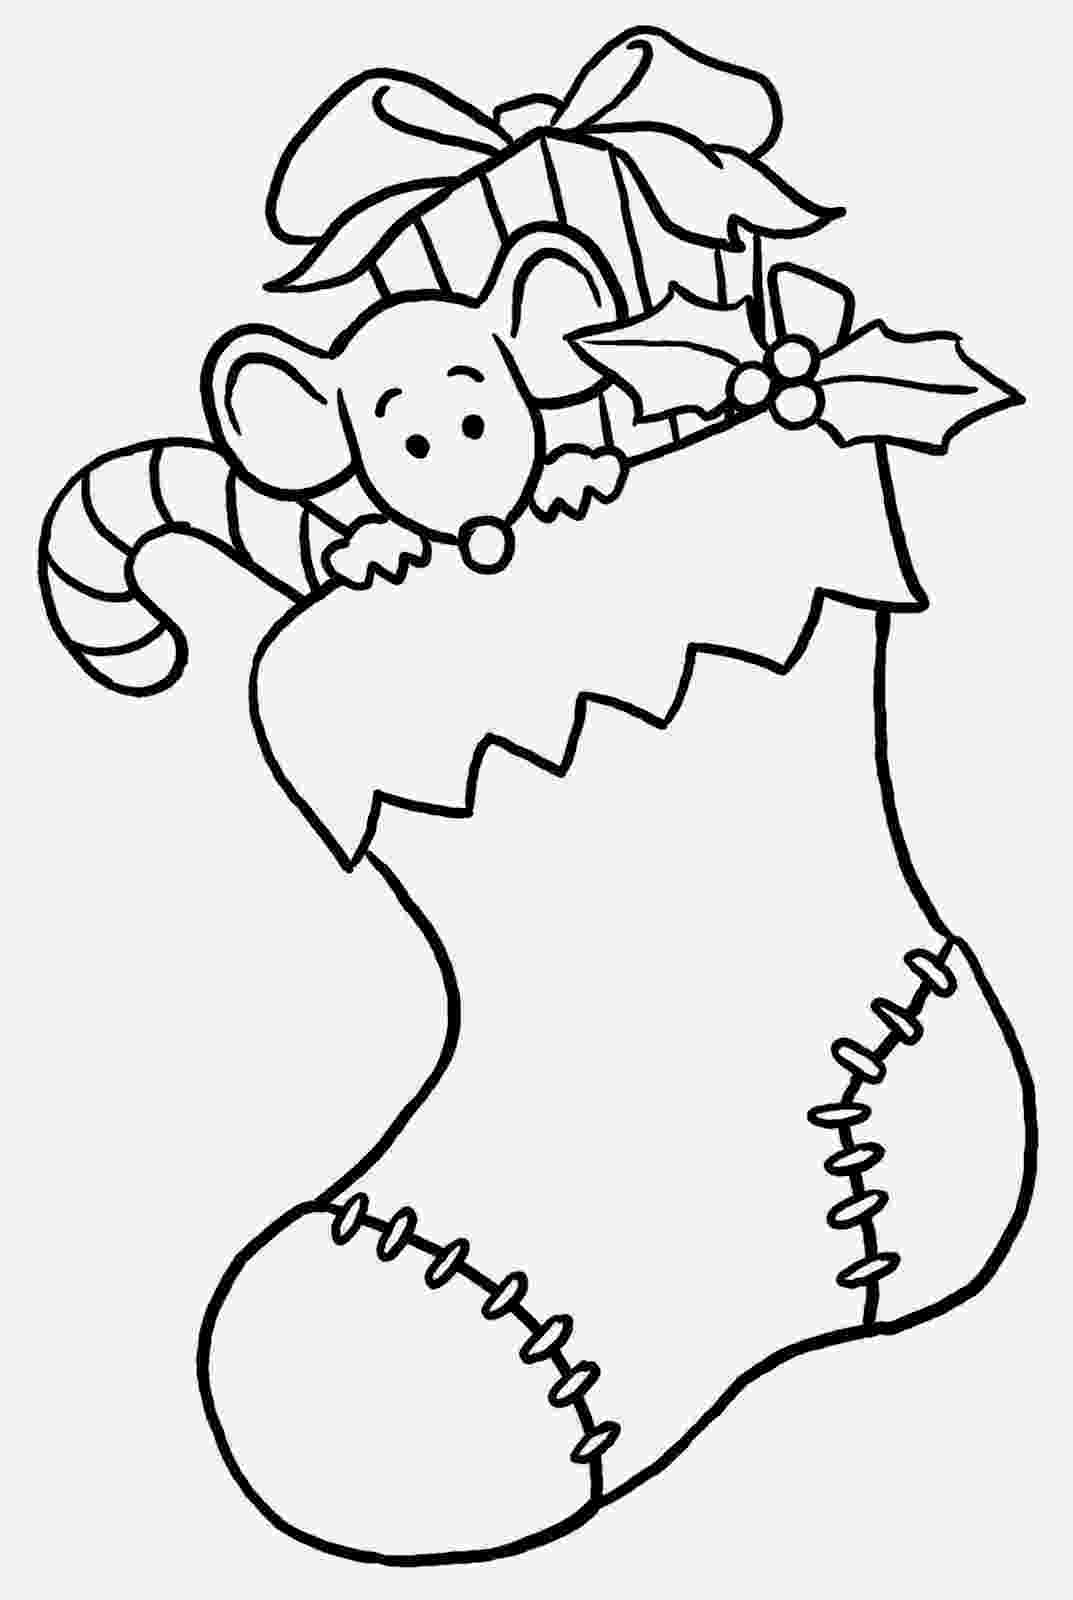 christmas colouring pages for preschoolers free printable preschool coloring pages best coloring pages colouring christmas preschoolers for